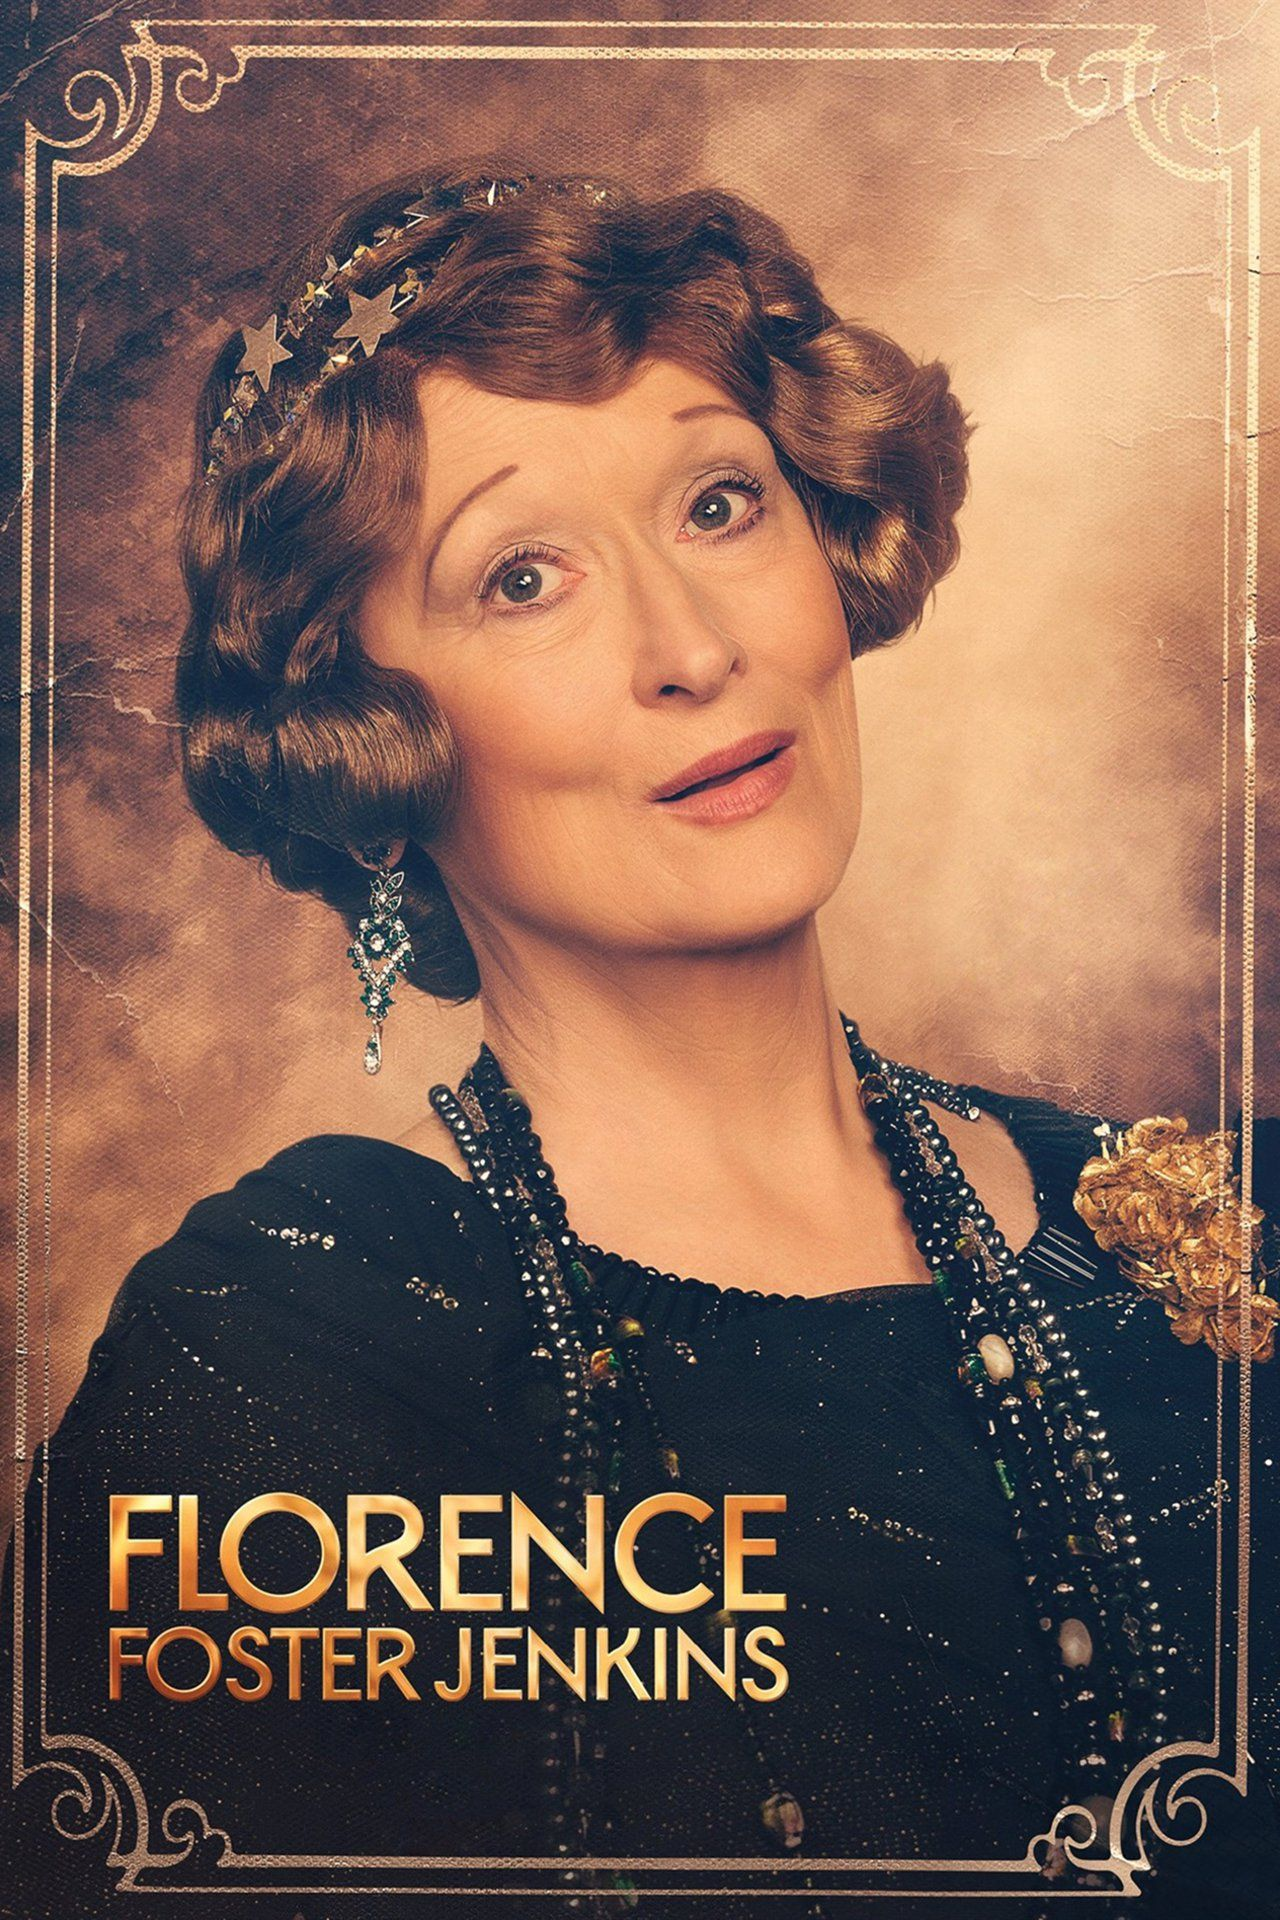 Set in 1940s New York, Florence Foster Jenkins is the true story of the legendary New York heiress and socialite (Meryl Streep) who obsessively pursued her dream of becoming a great singer. The voice she heard in her head was beautiful, but to everyone else it was hilariously awful.